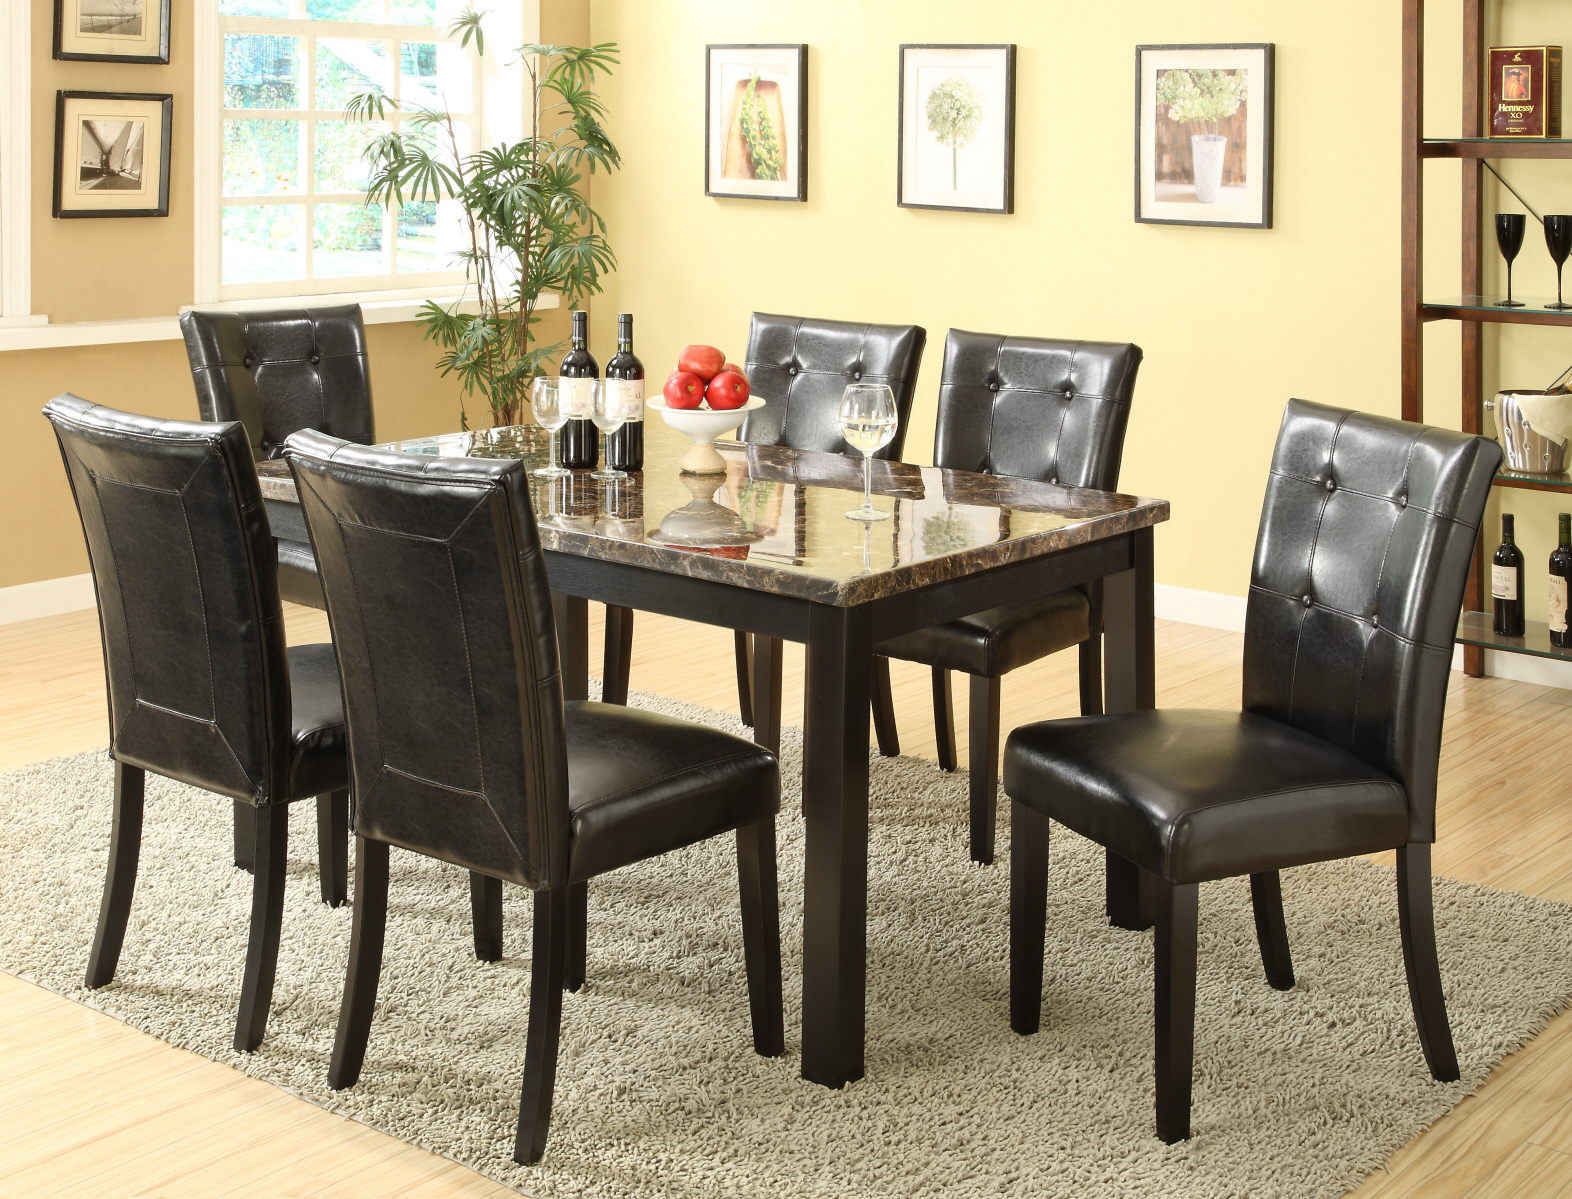 Dining room art decor furniture furniture store in houston muebleria en houston - Houston dining room furniture ideas ...